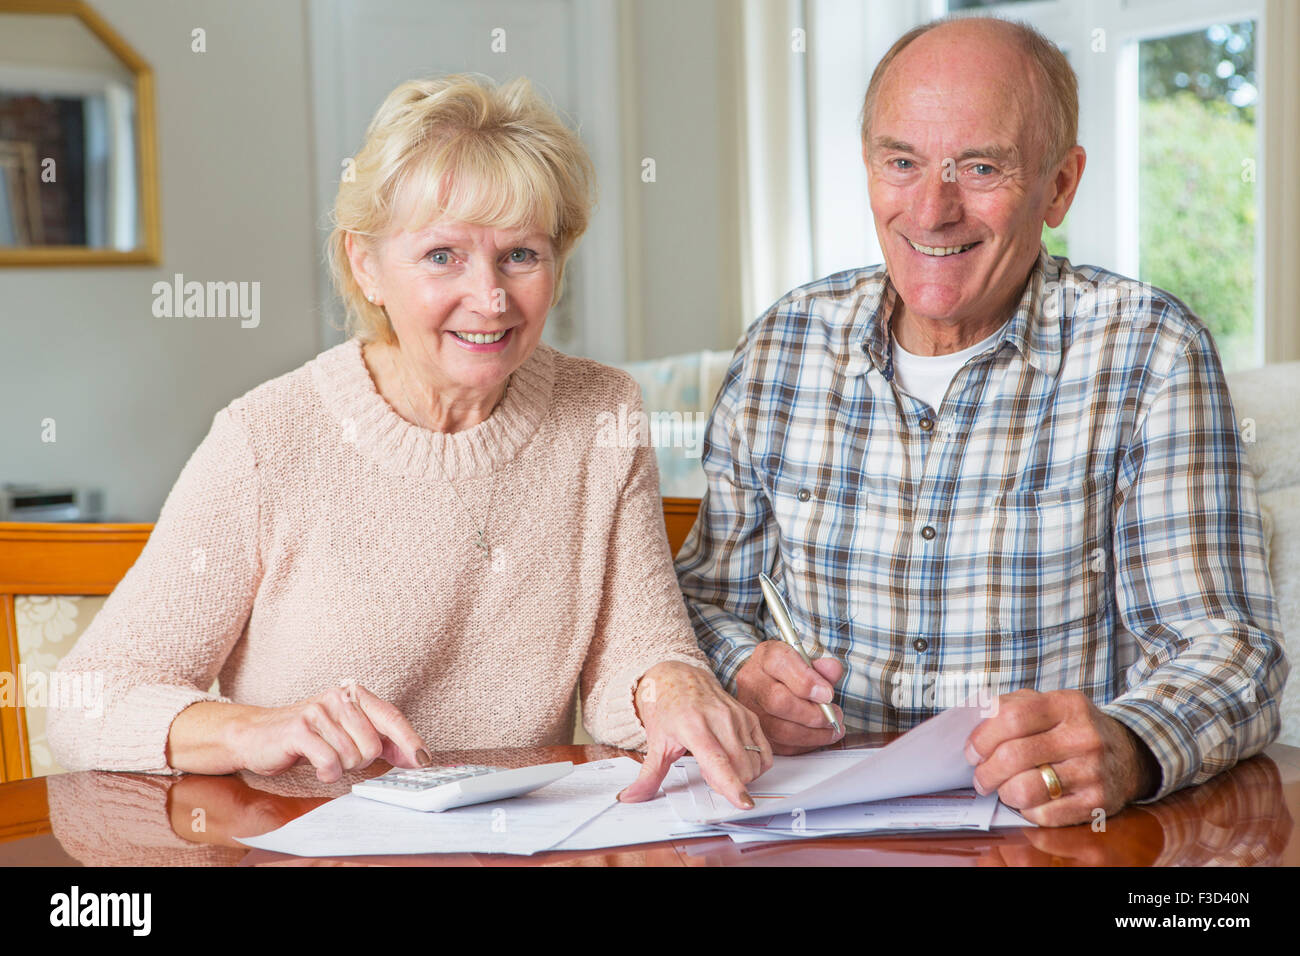 Happy Senior Couple reviewing Domestic Finances Together - Stock Image